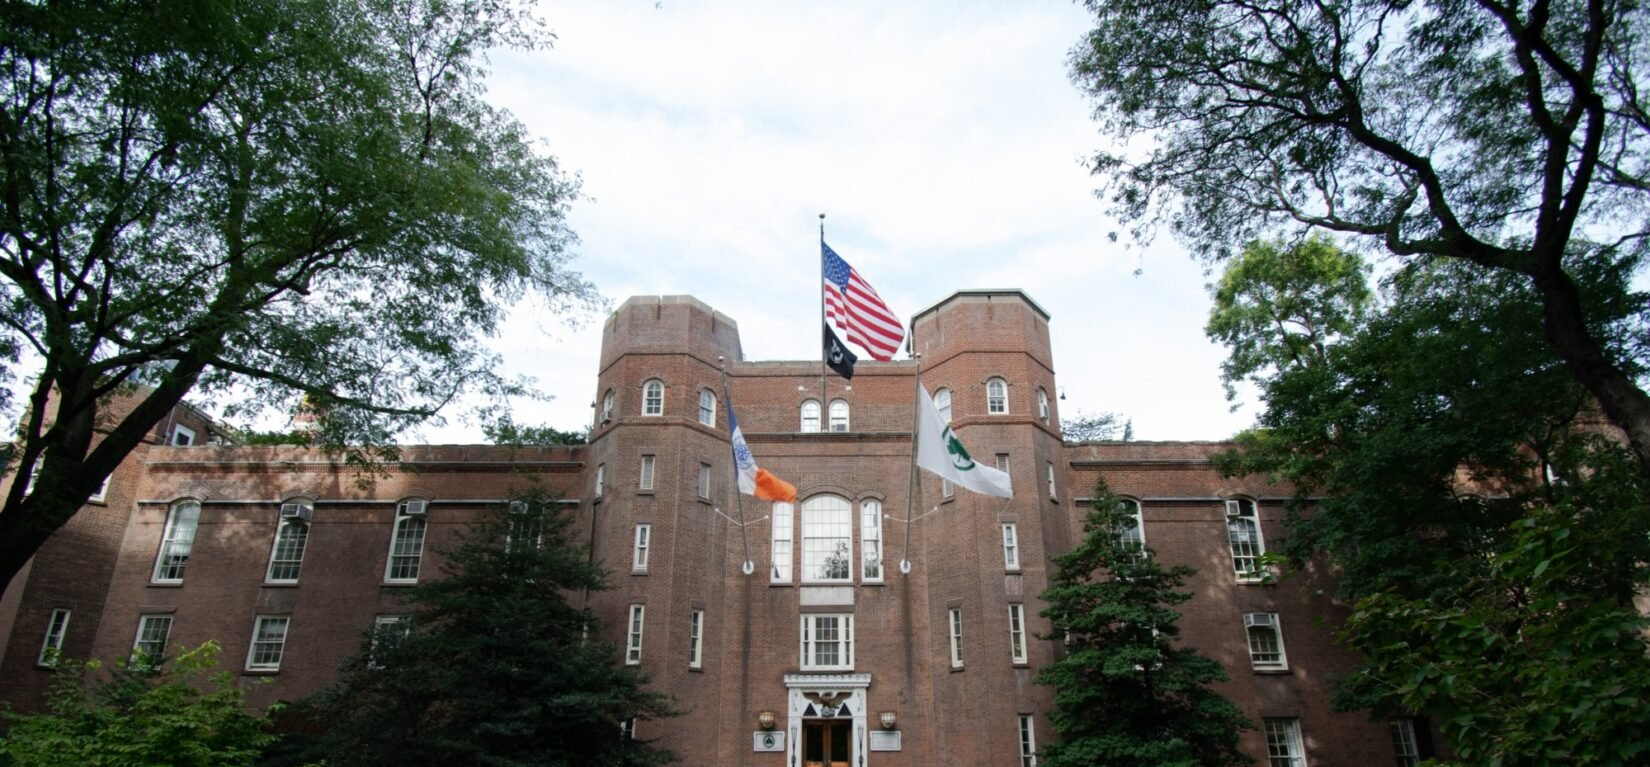 The imposing facade of the Arsenal, with flags waving from three poles